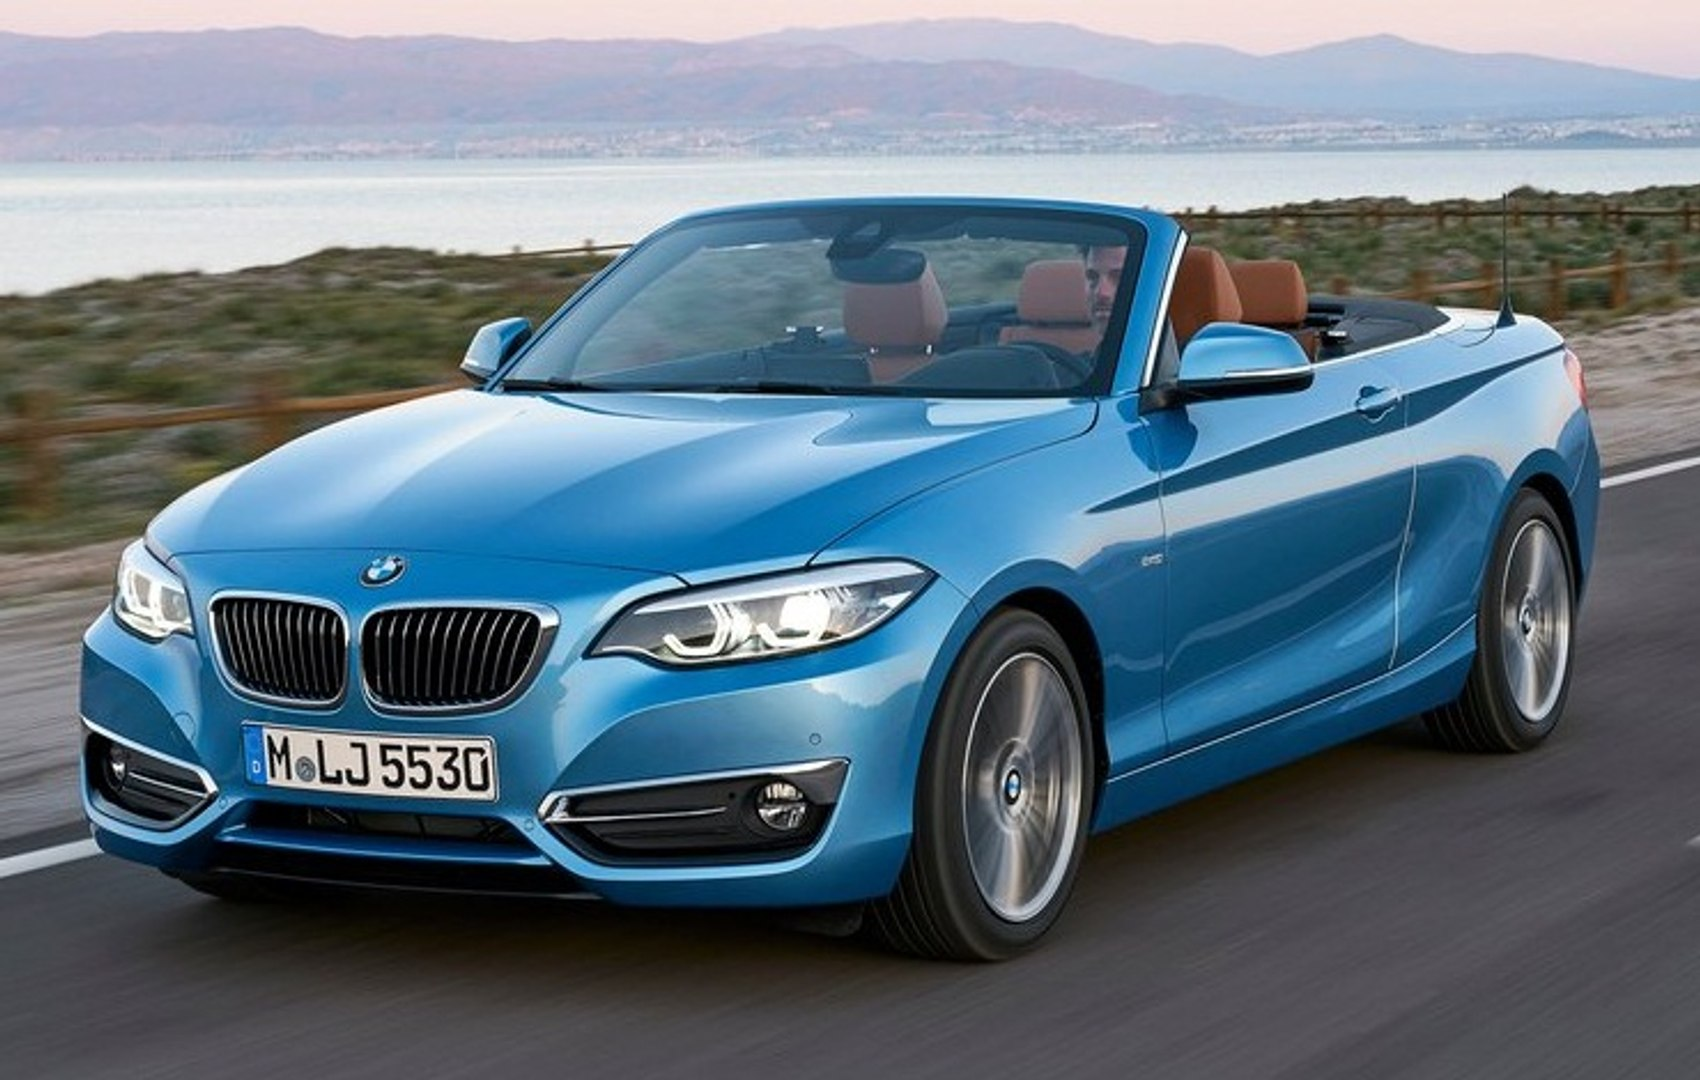 2018 Bmw 2 Series Convertible Vs Mercedes E Class Cabriolet Video Dailymotion